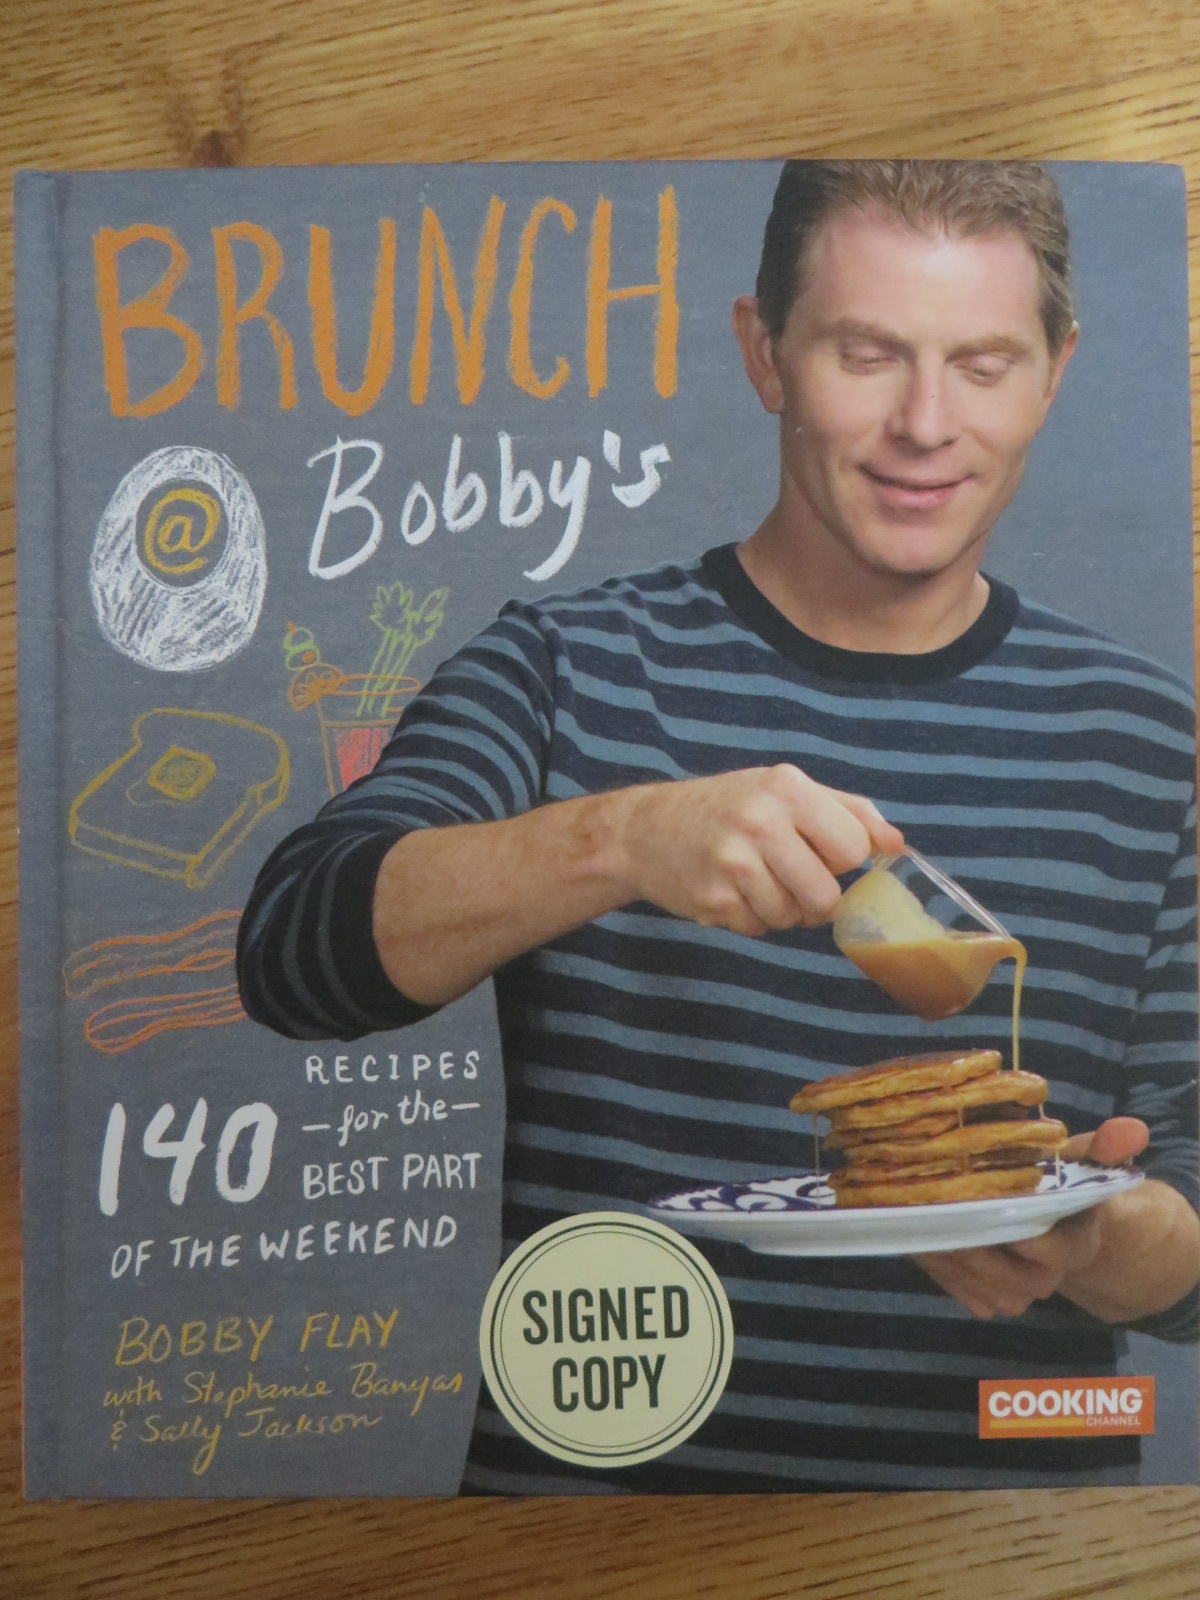 bobby flay autographed brunch at bobby's hardcover cookbook - art